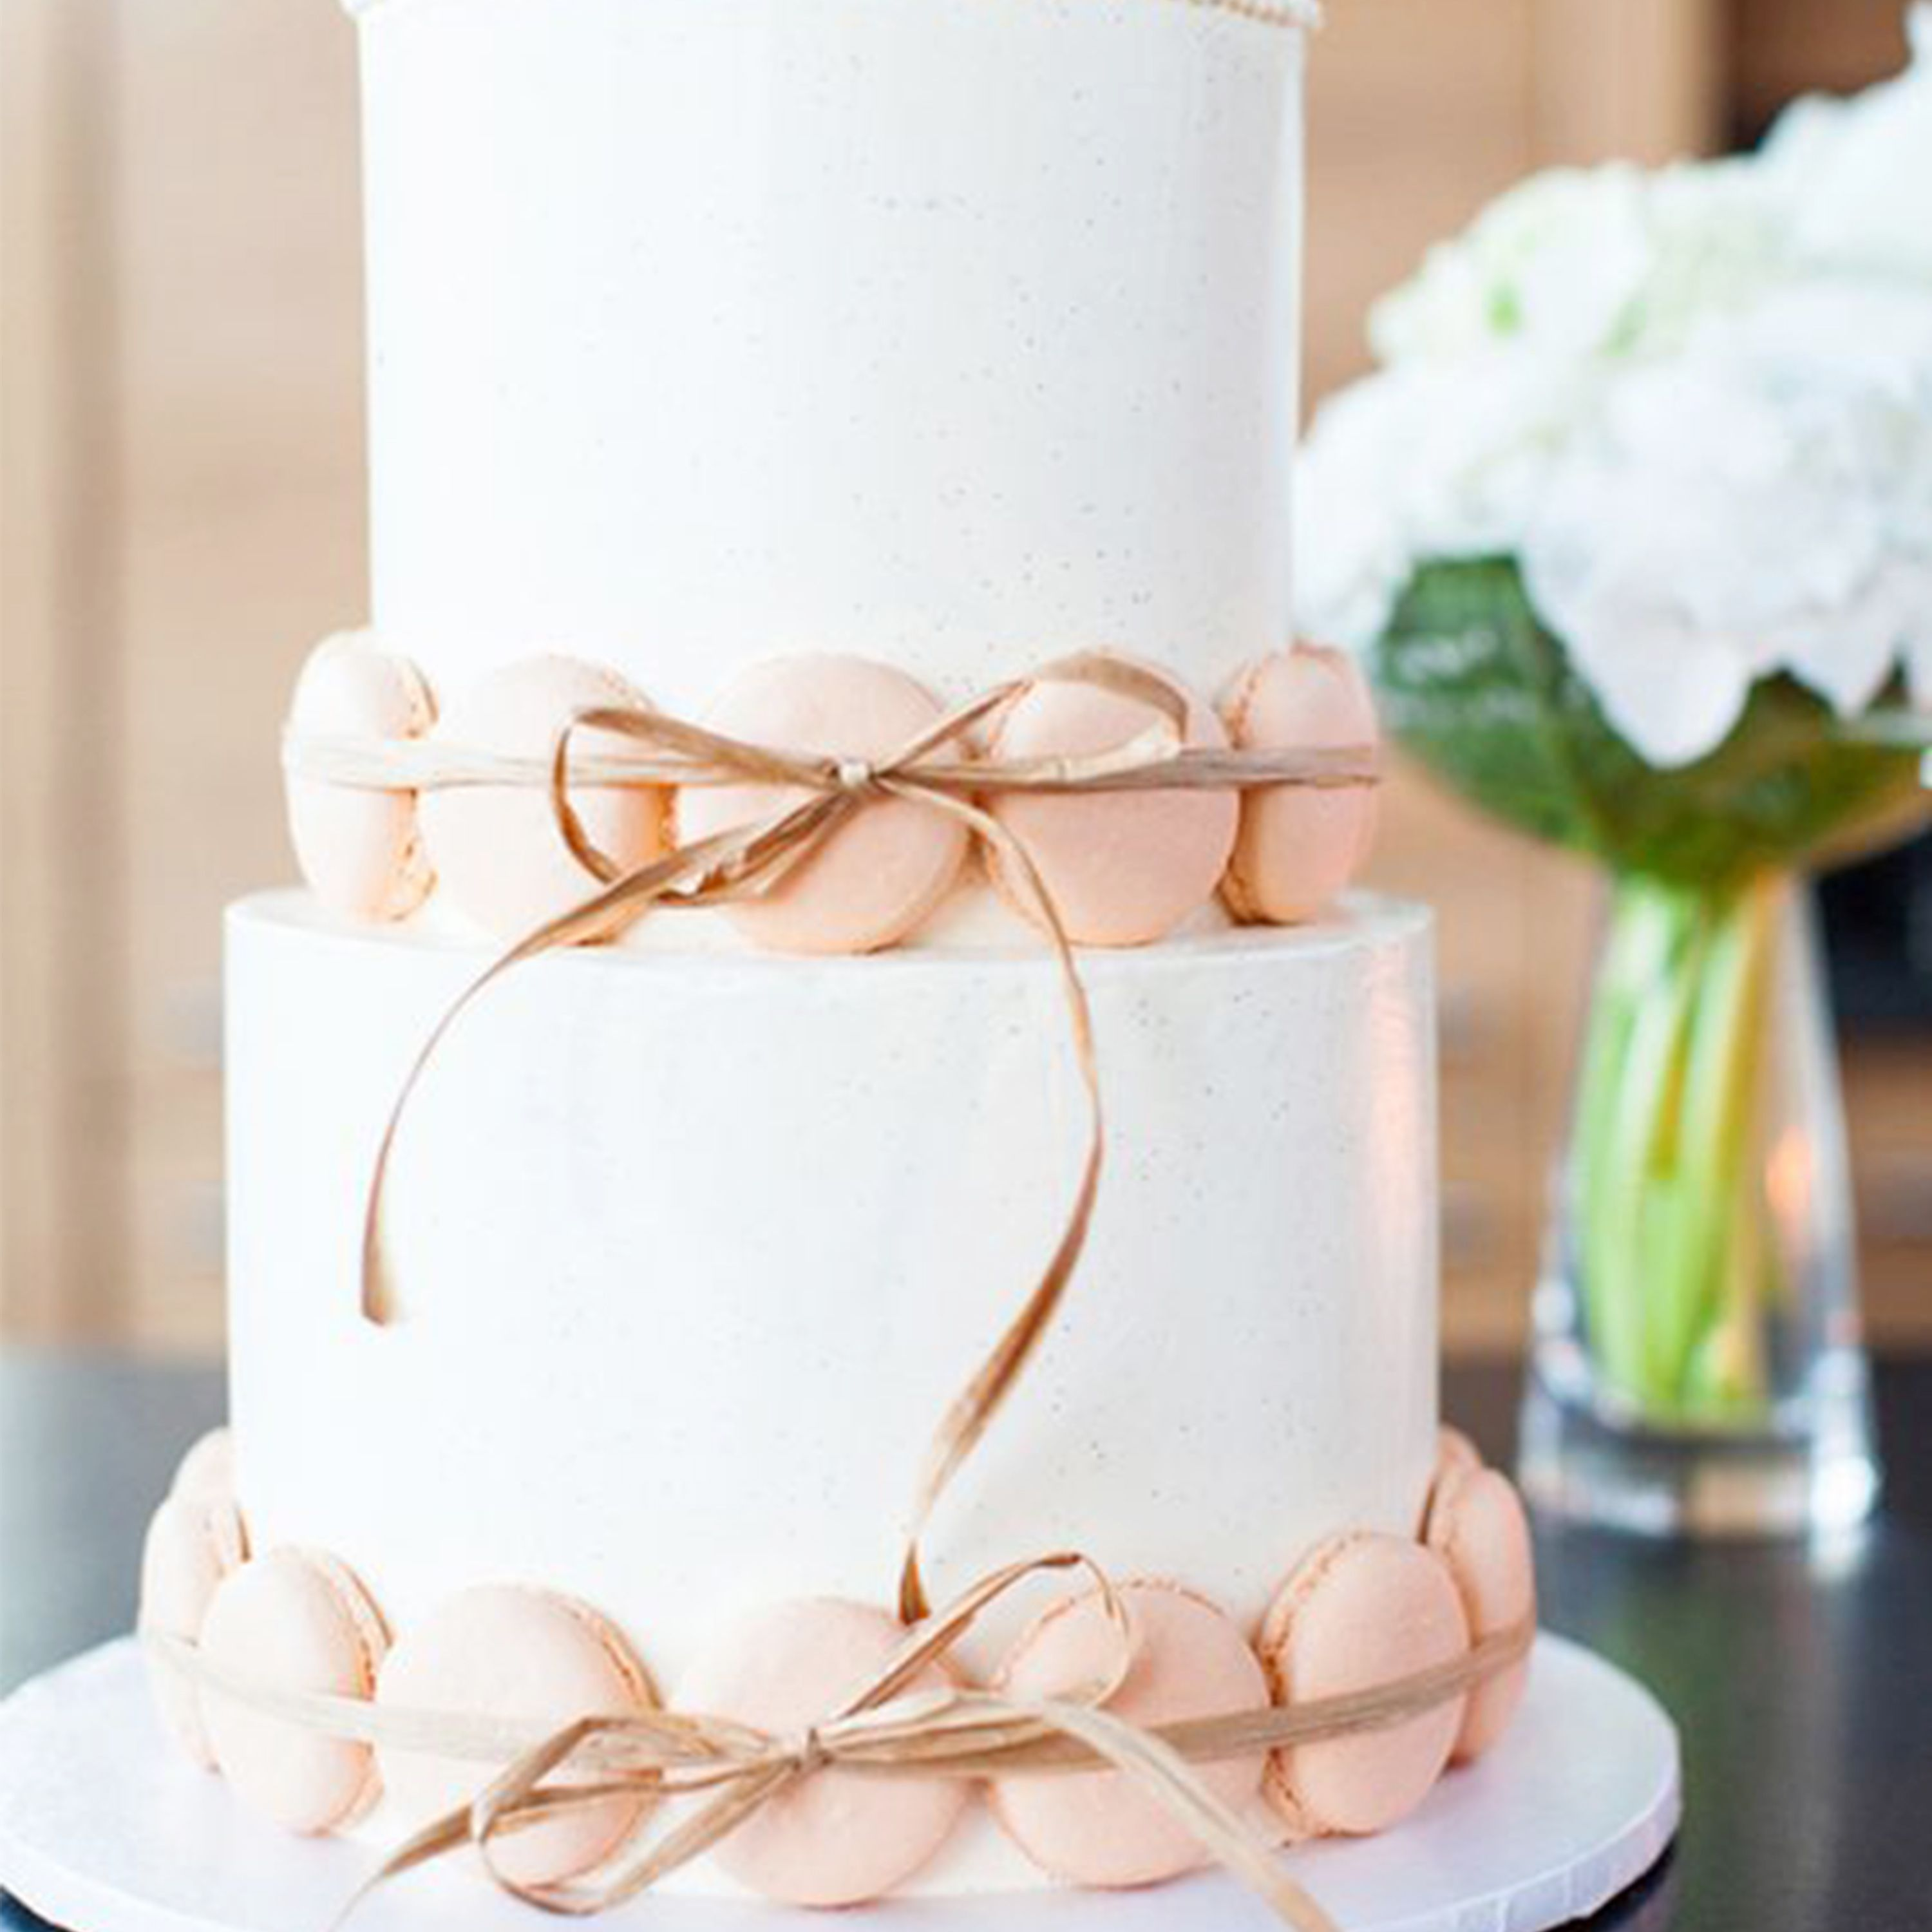 We Love This Simple Wedding Decorated With Macrons What Cake Will You Be Having